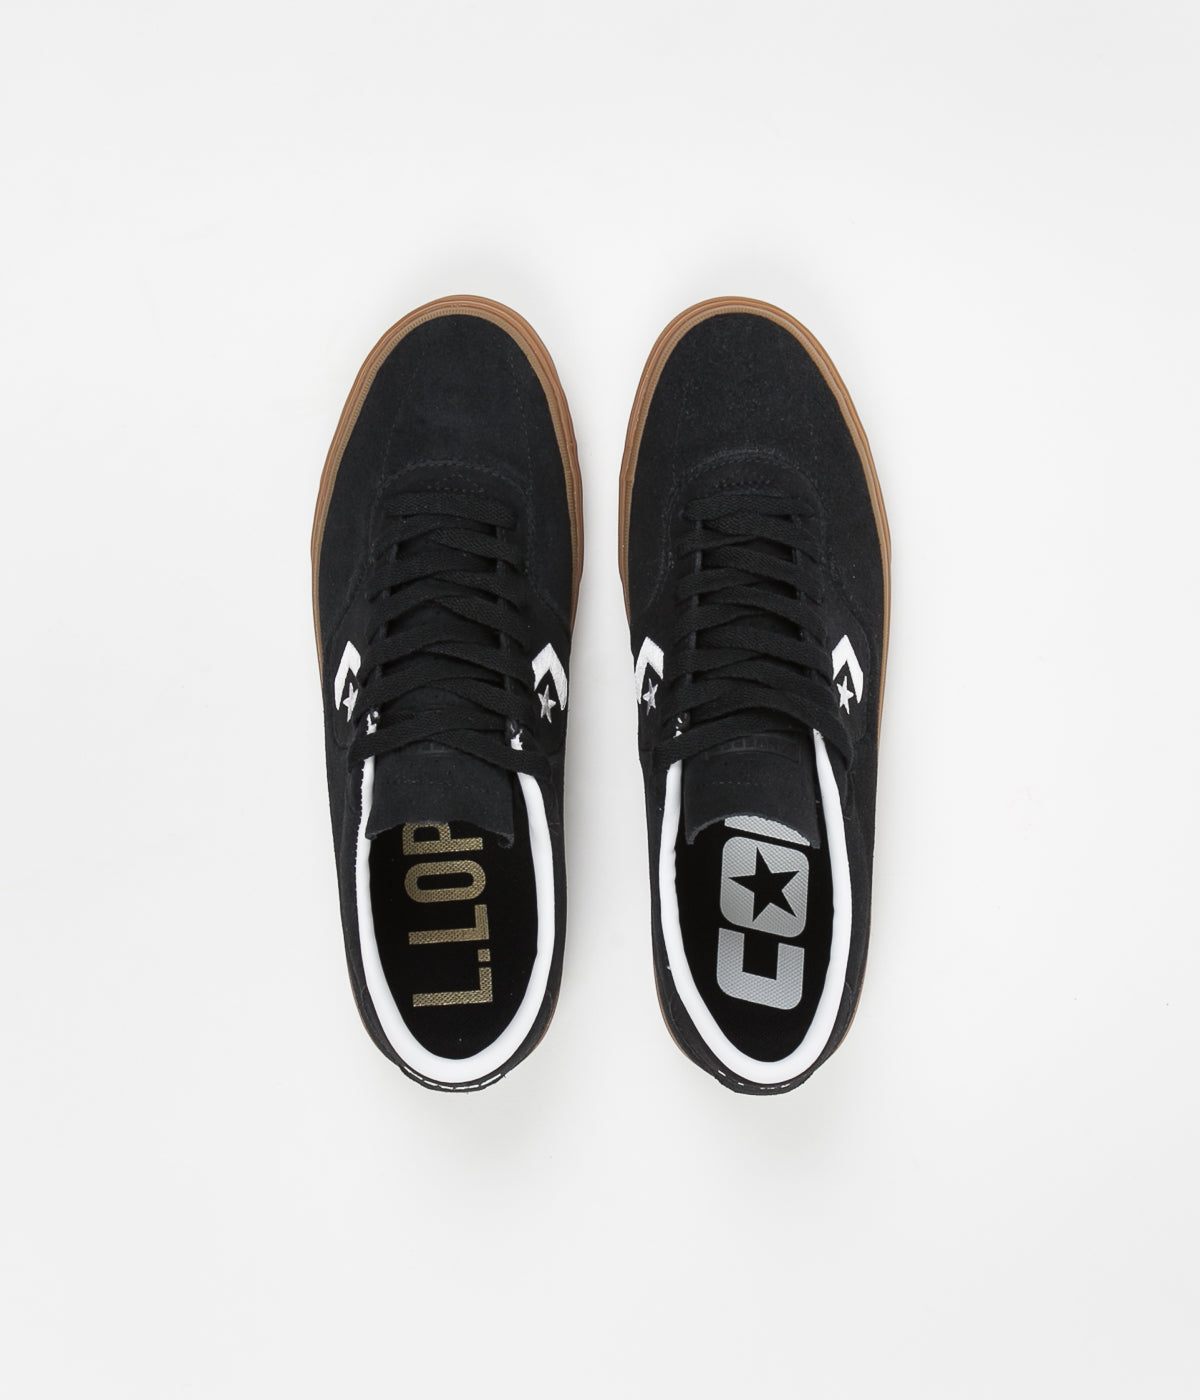 Converse Louie Lopez Pro Shoes - Black / White / Gum